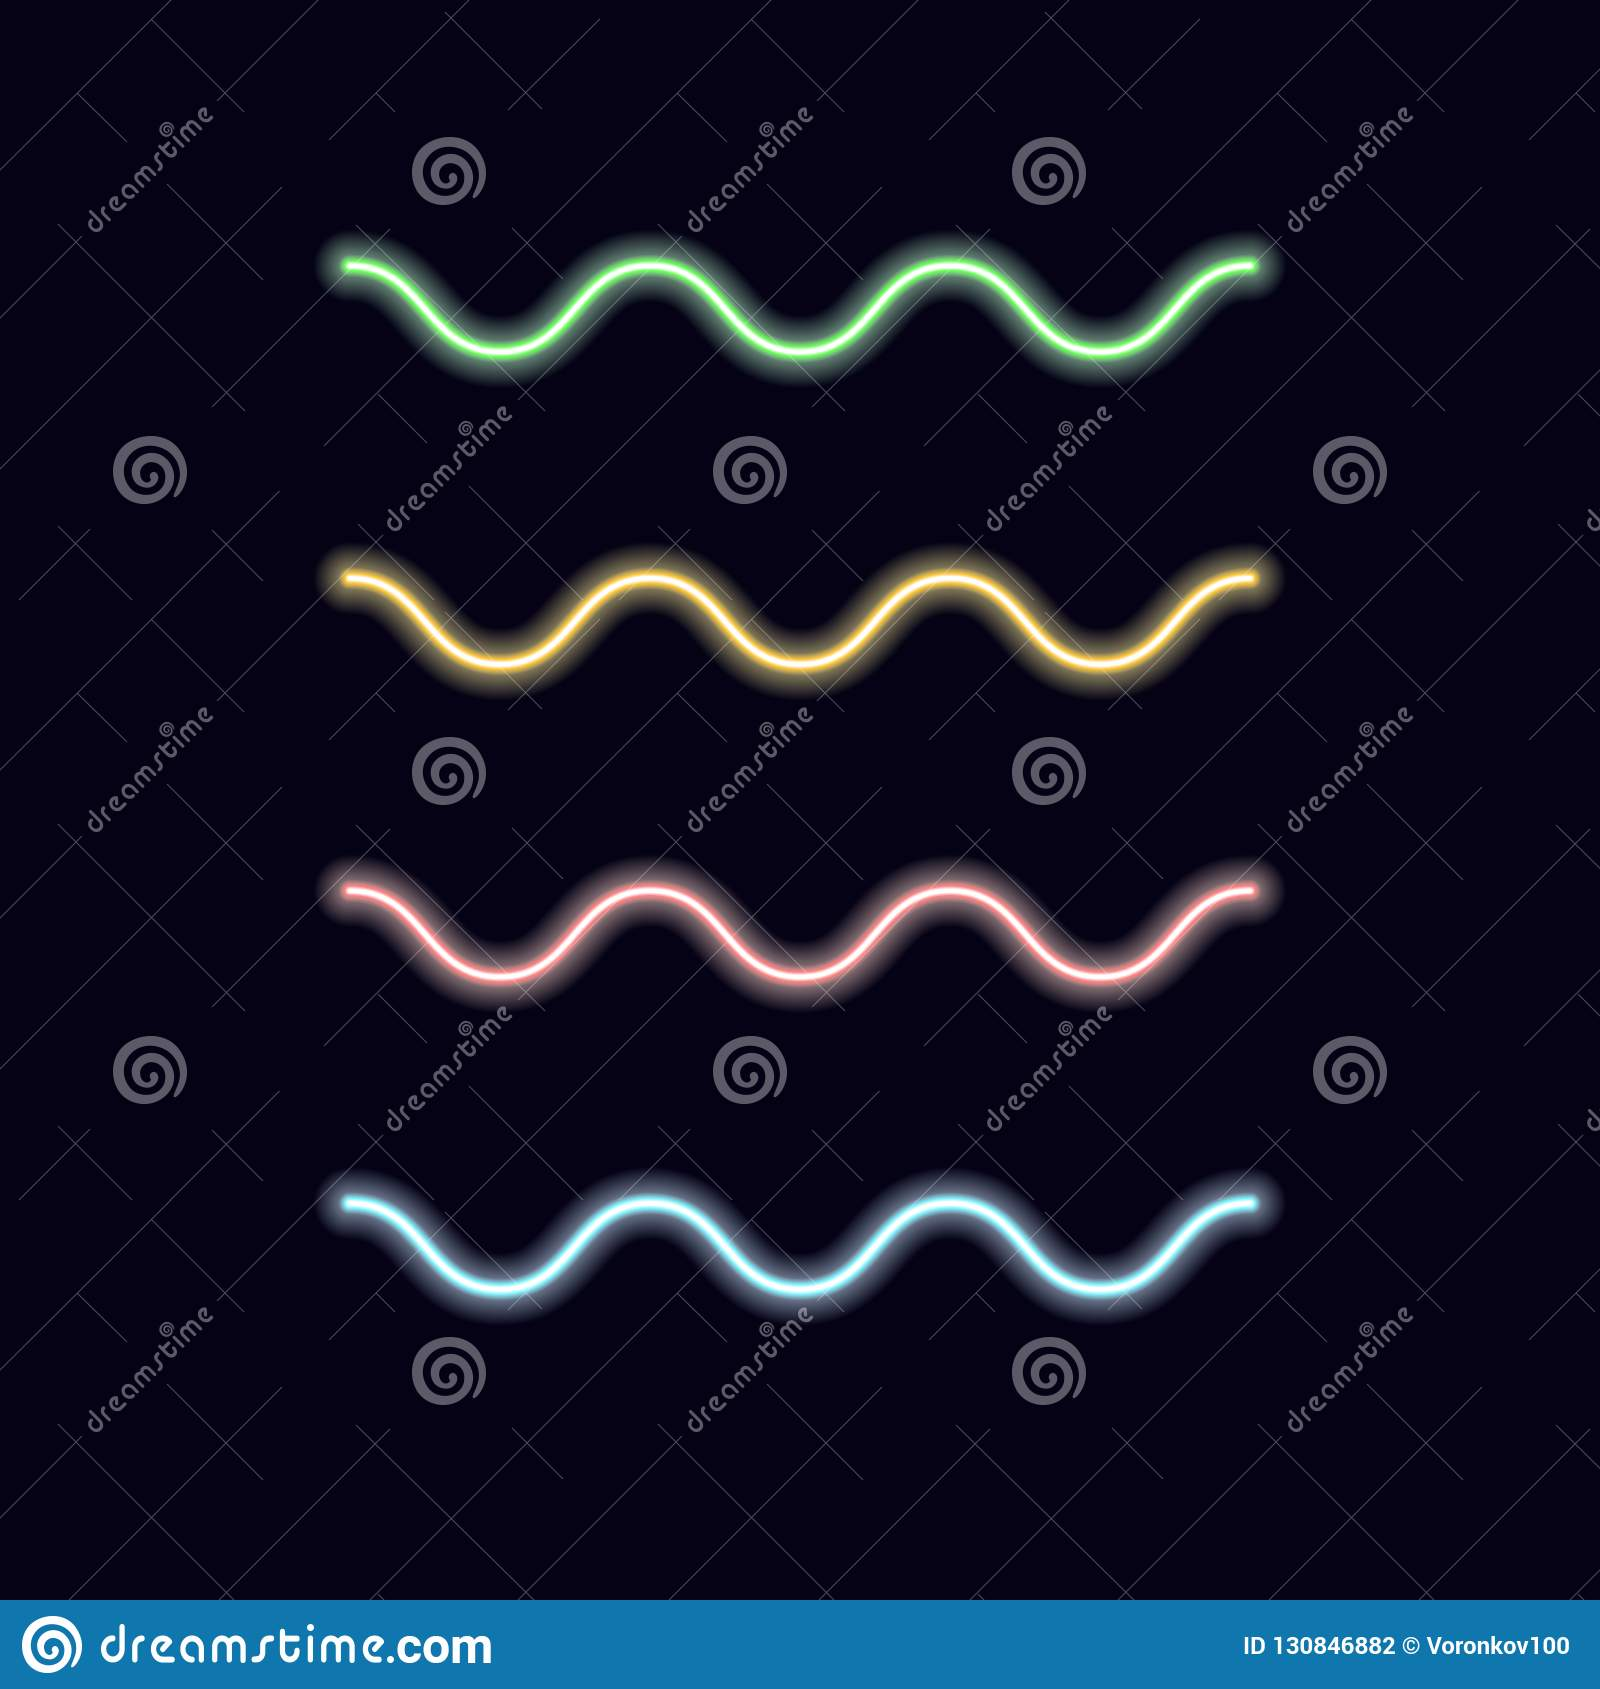 Neon linear waves. Vector serpentine lines decorative light design elements on isolated dark background.